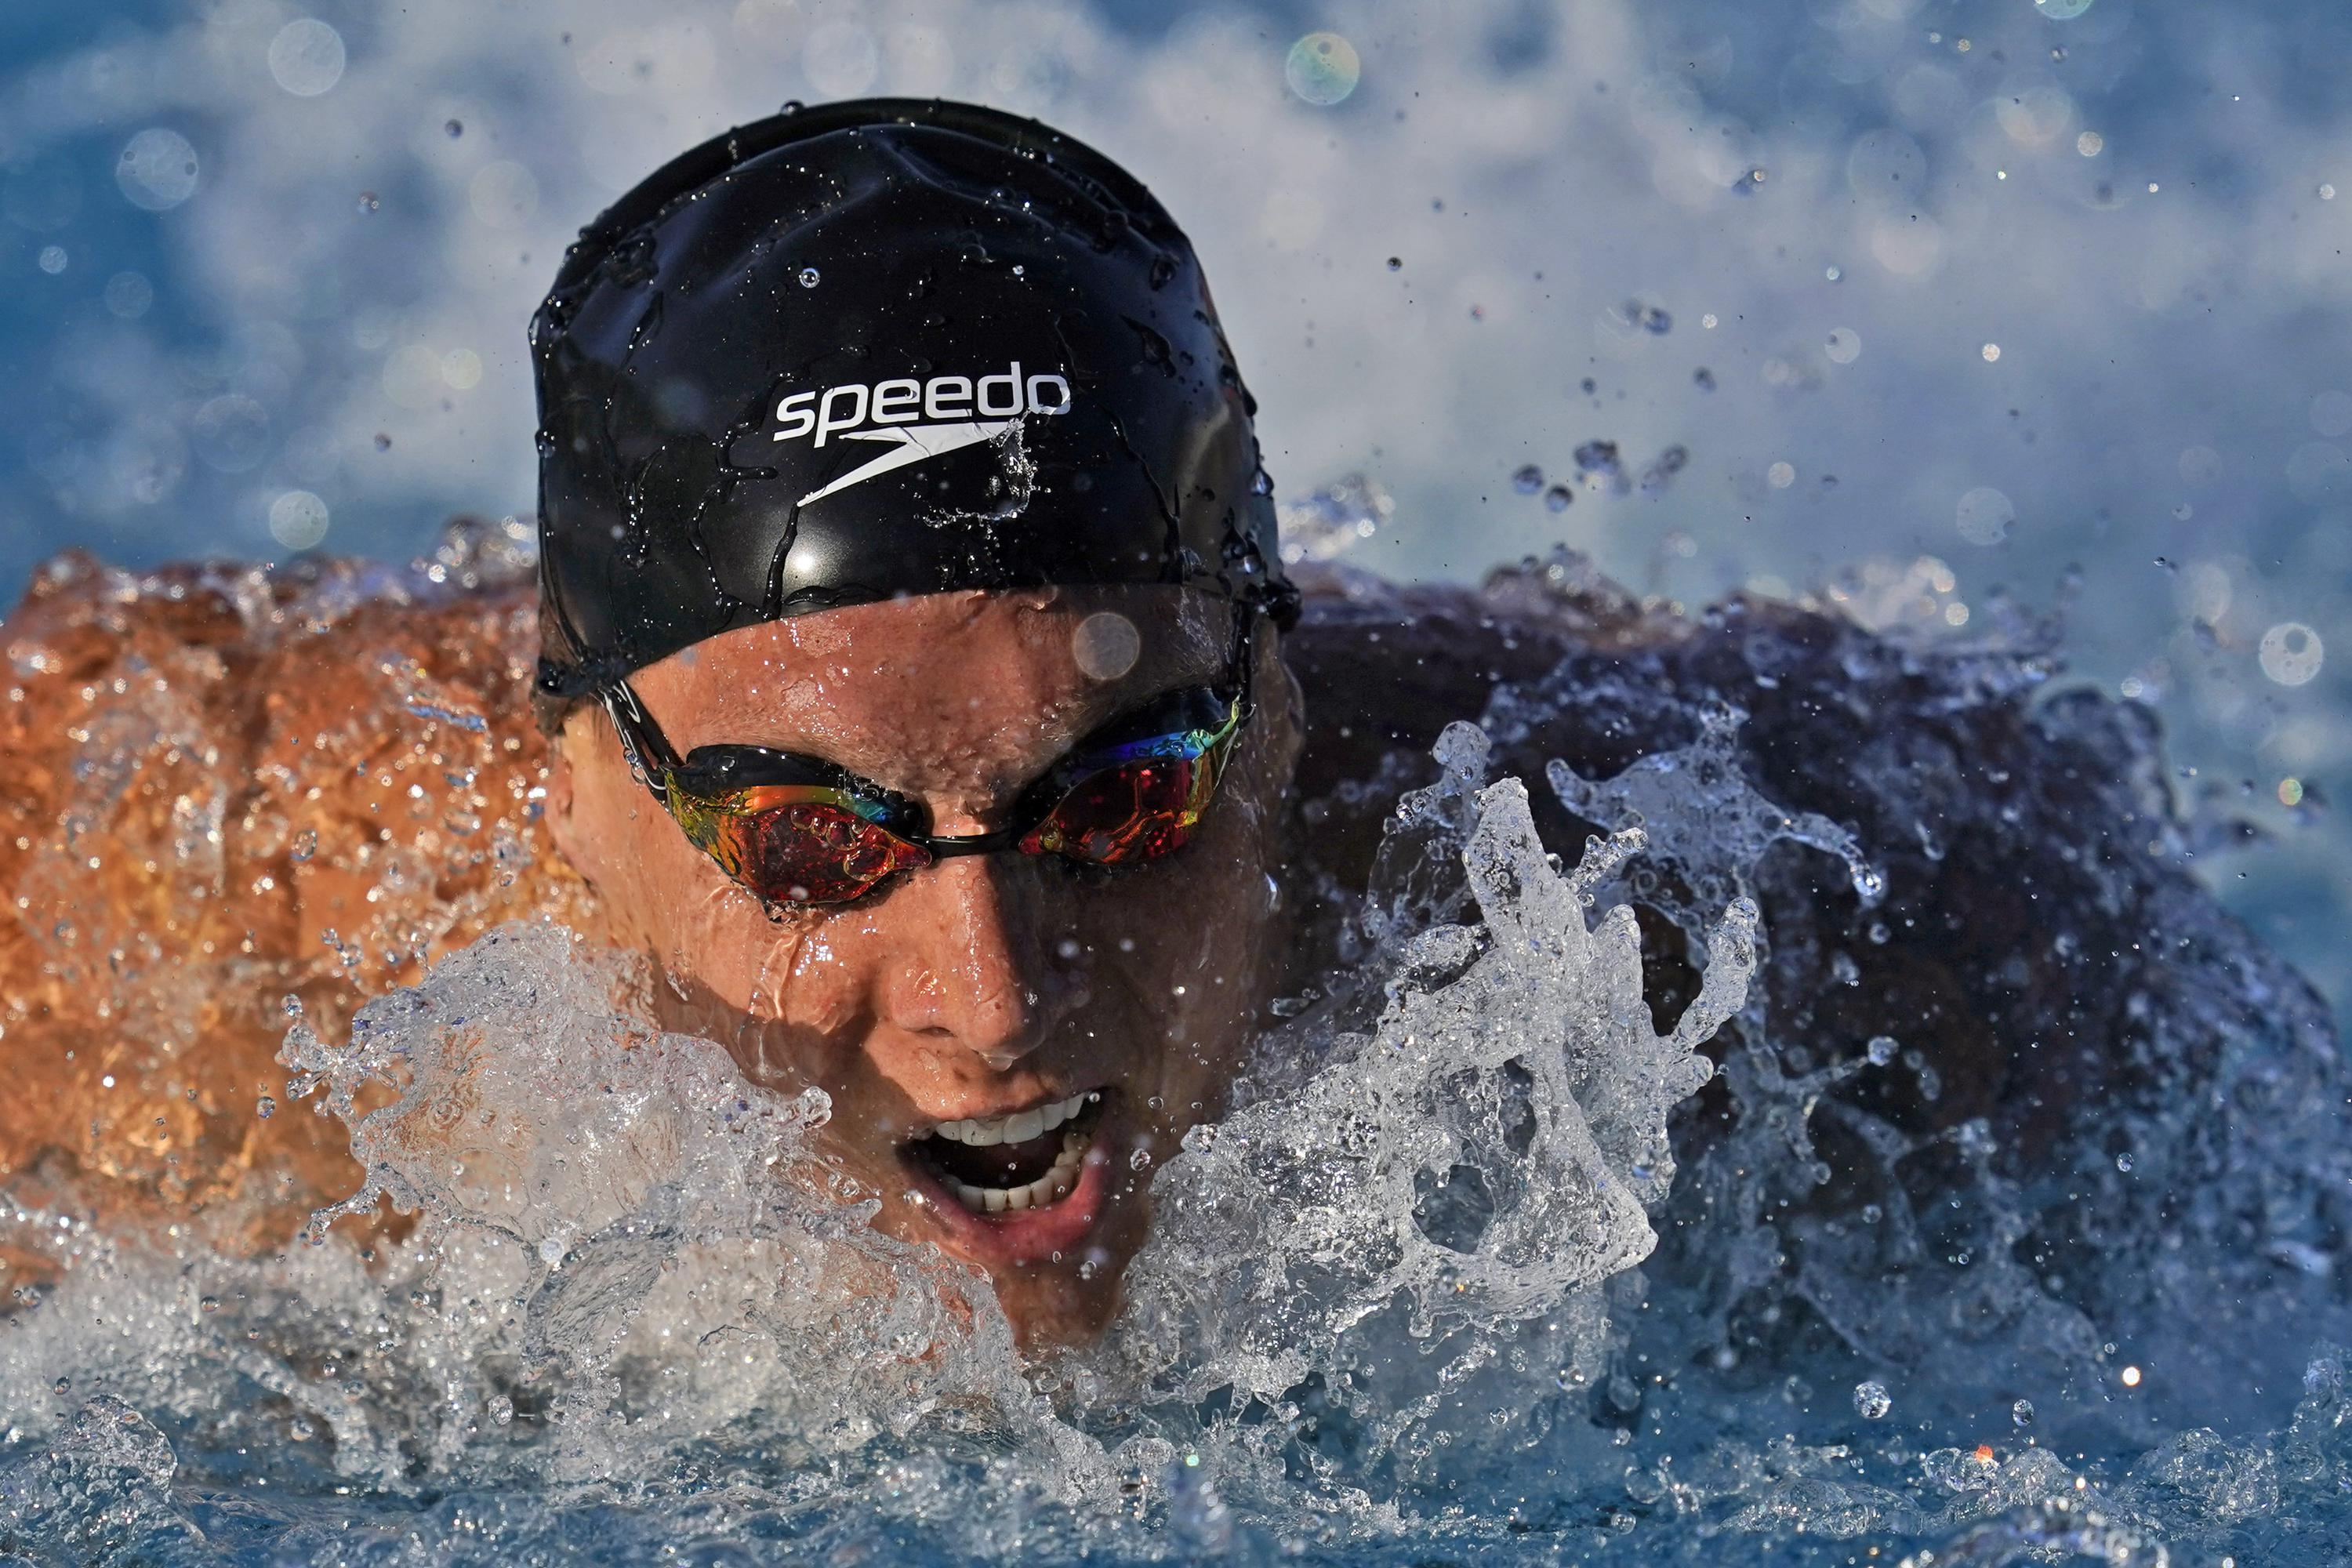 Dressel, Ledecky lead chase for Olympic berths at US trials - Associated Press